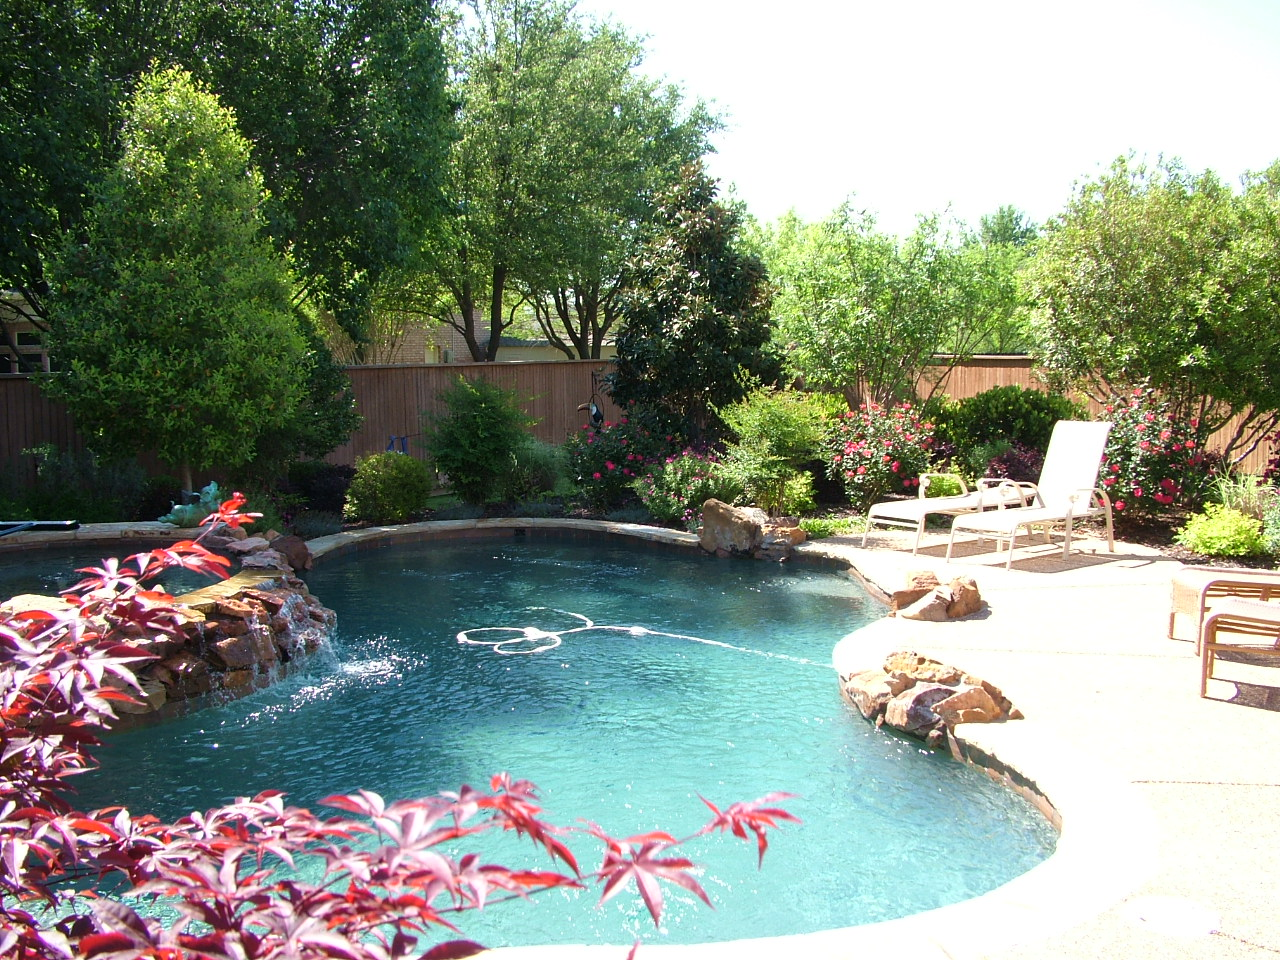 Steele landscapes patios keller tx 76248 angies list for Pool landscaping